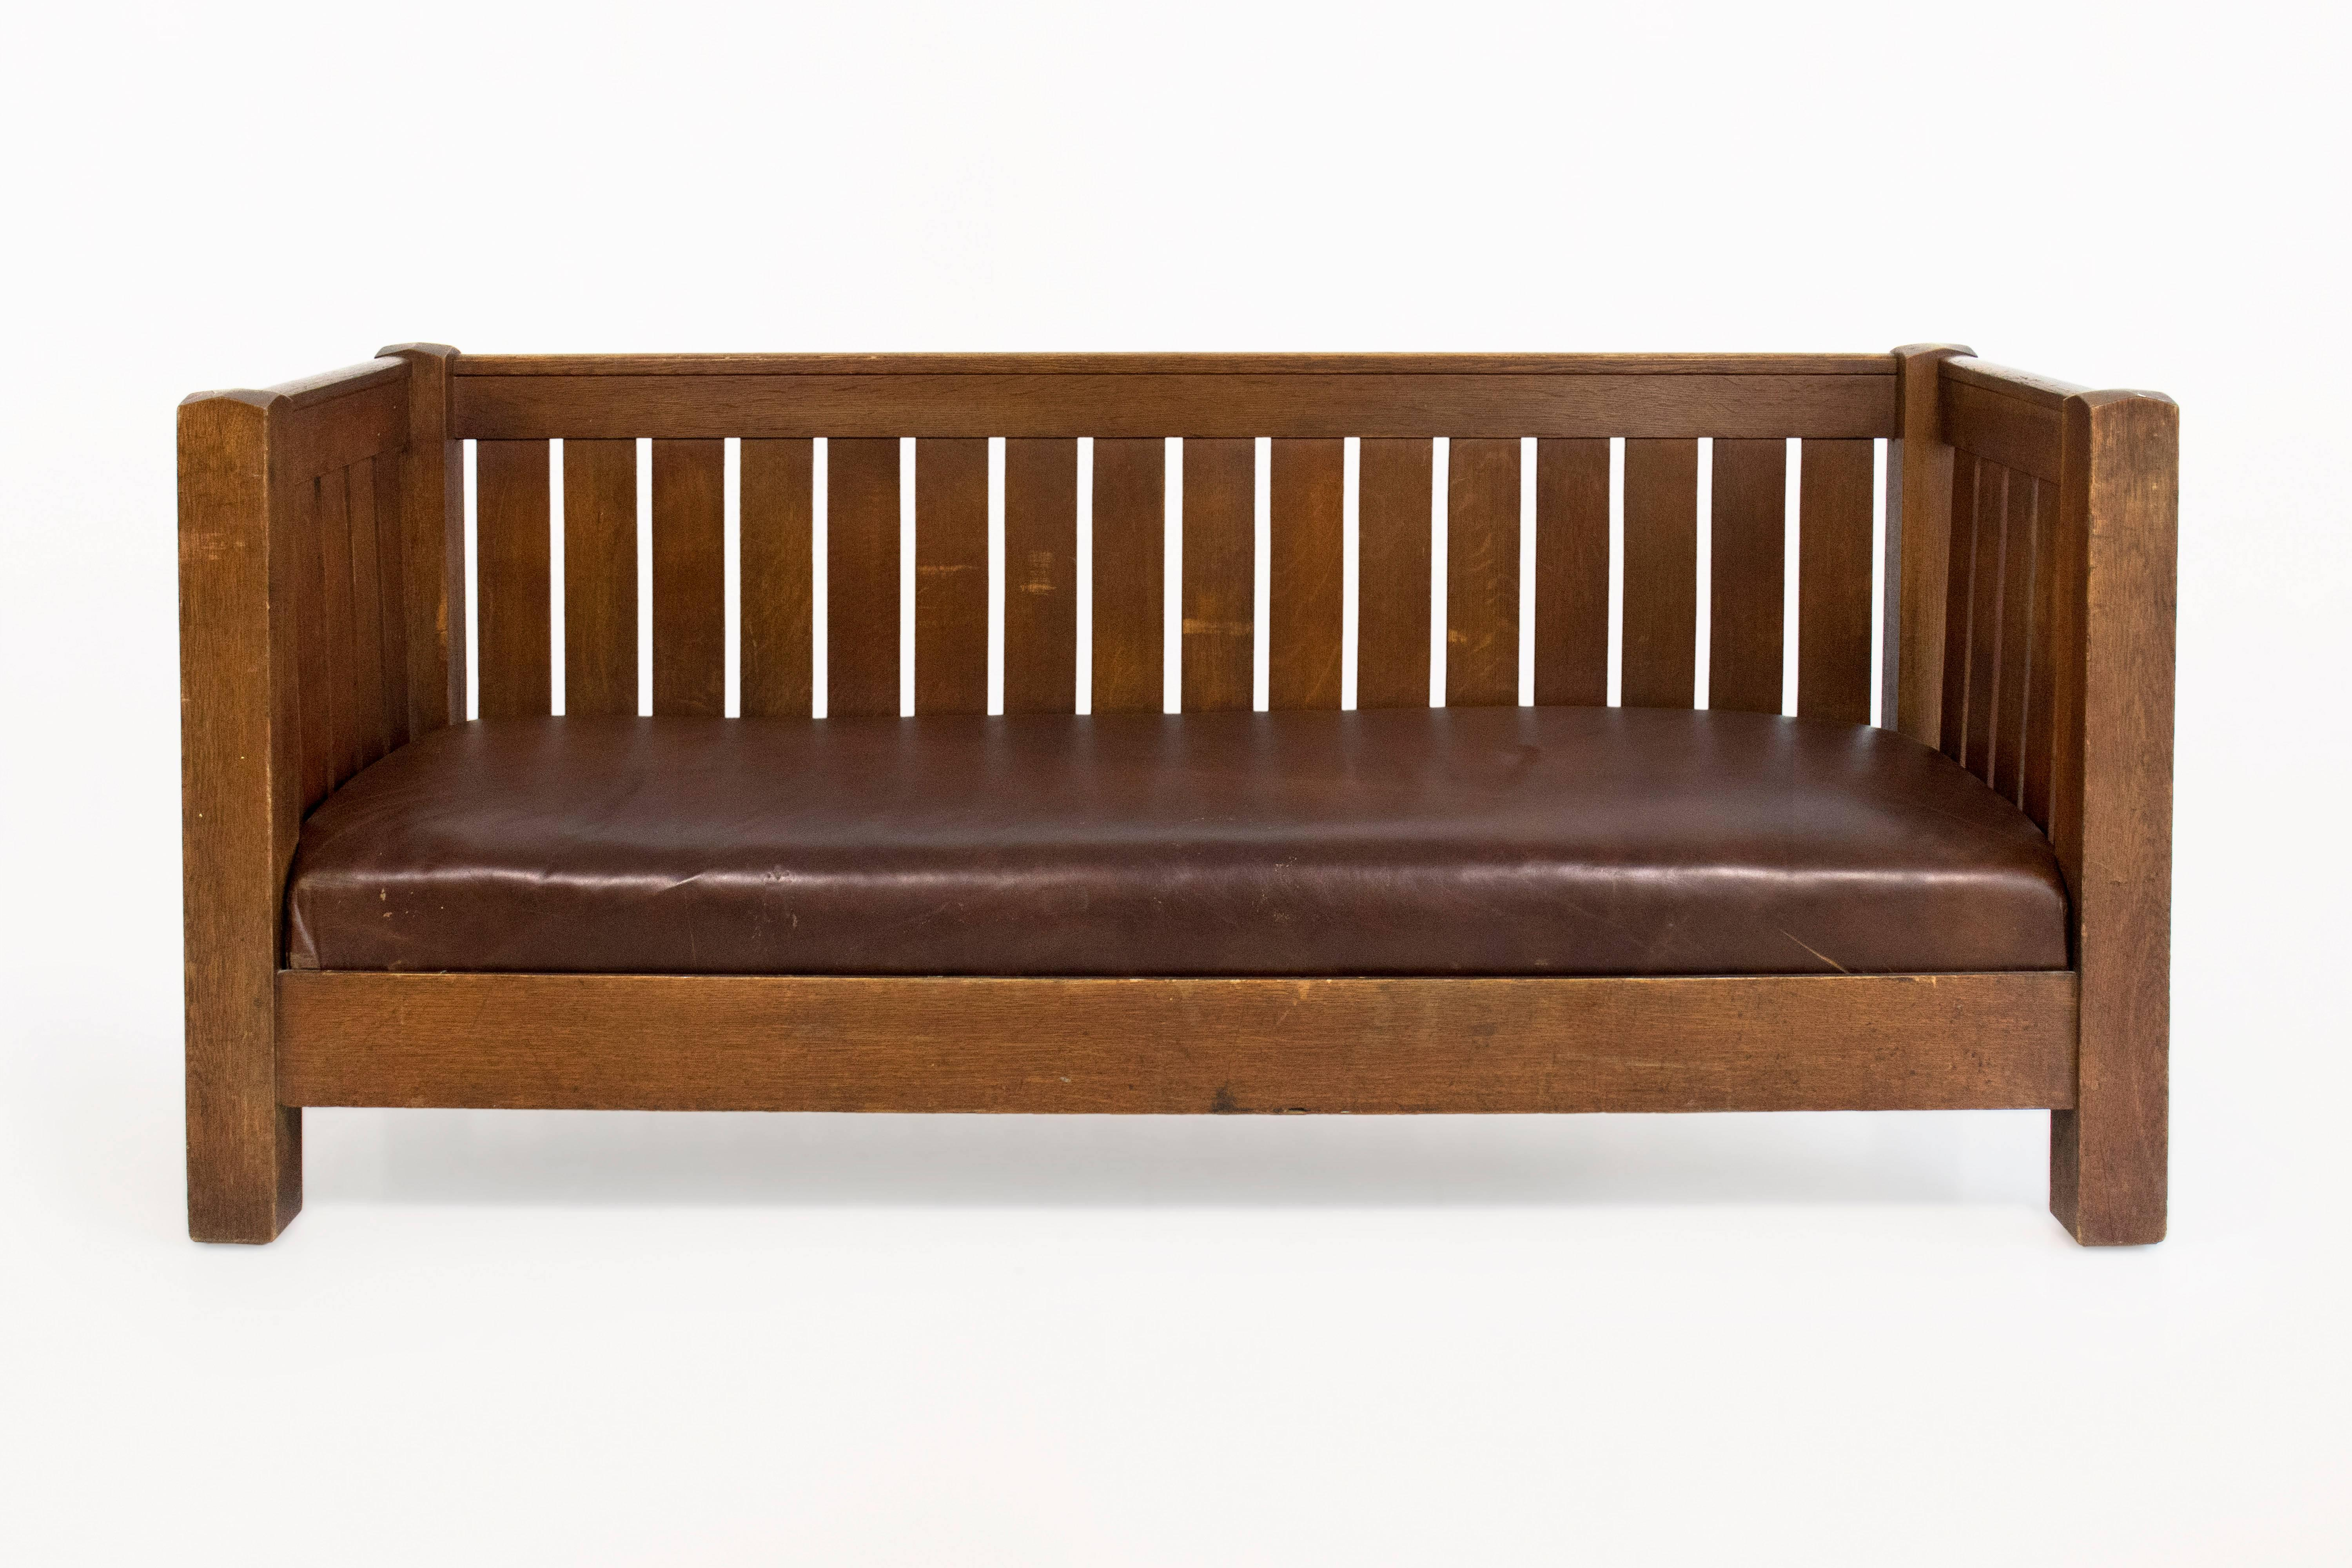 Large And Rare Mission Oak Sofa Bench By Gustav Stickley, Circa 1910, USA